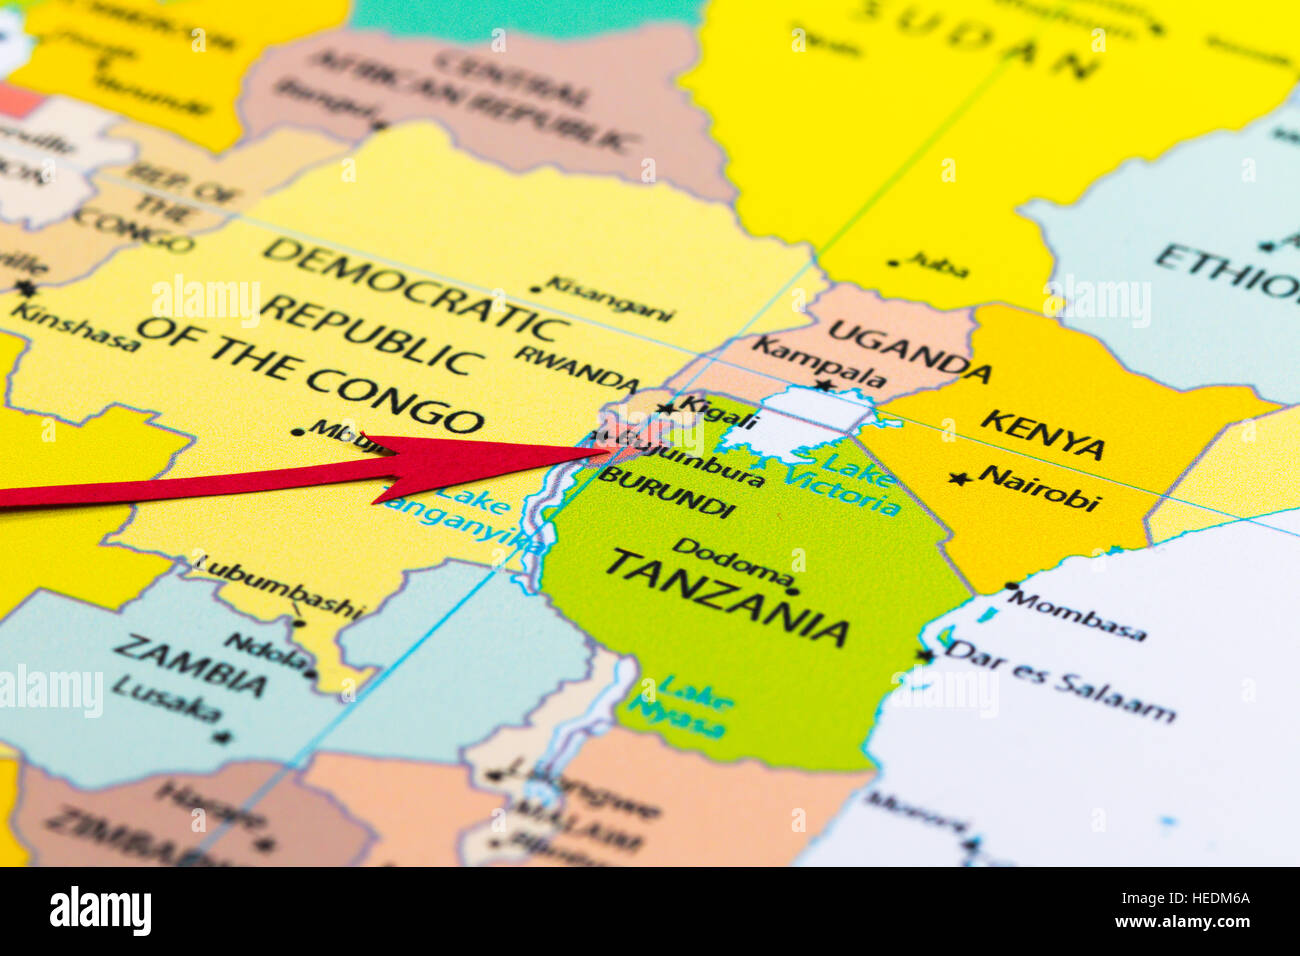 Red arrow pointing Burundi on the map of Africa continent Stock